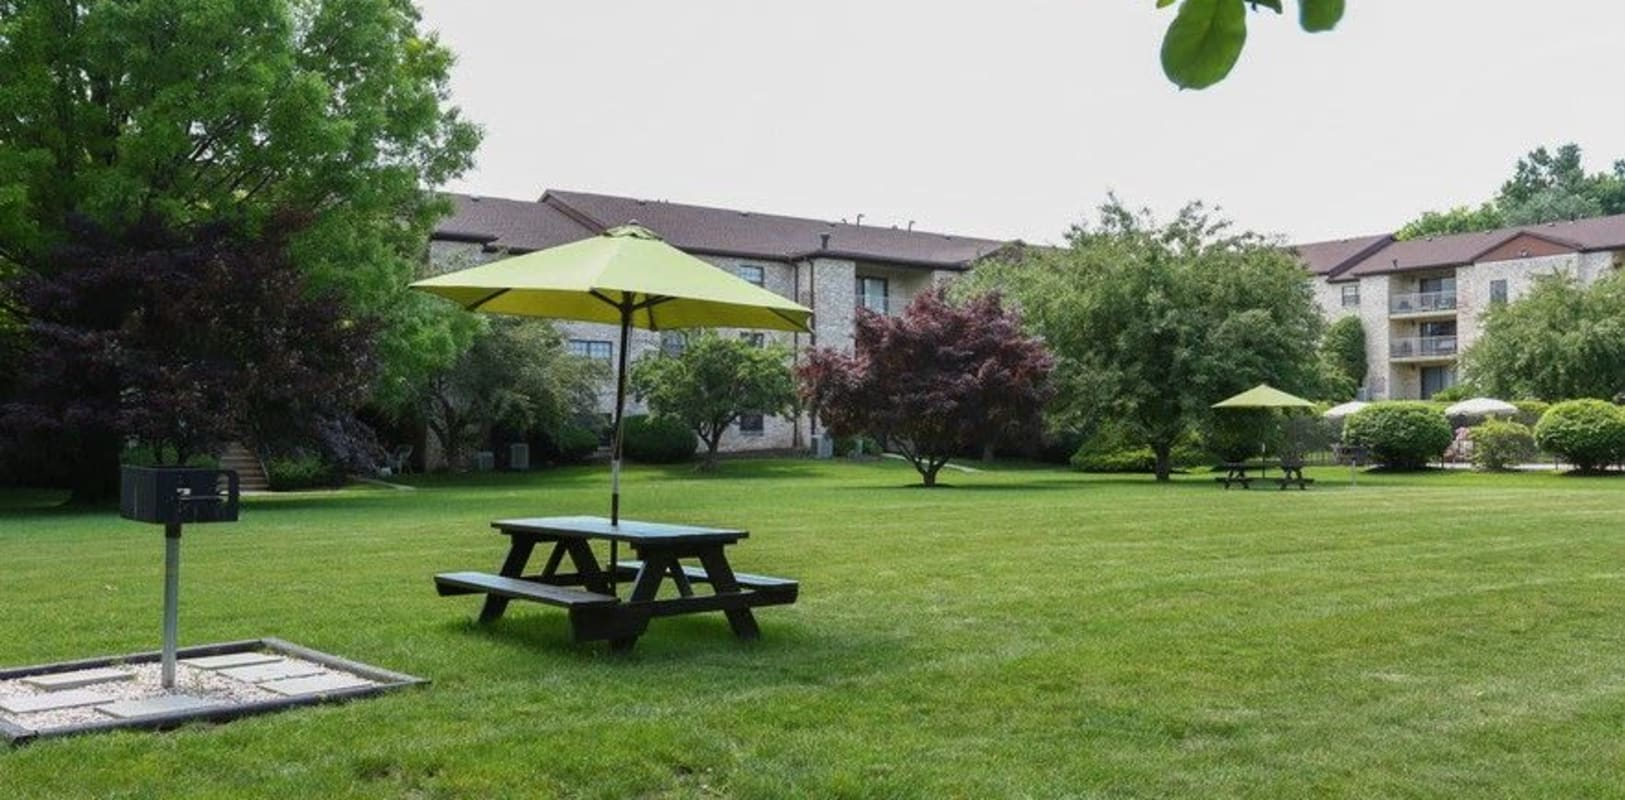 Outdoor picnic area at Country Club in Reading, Pennsylvania